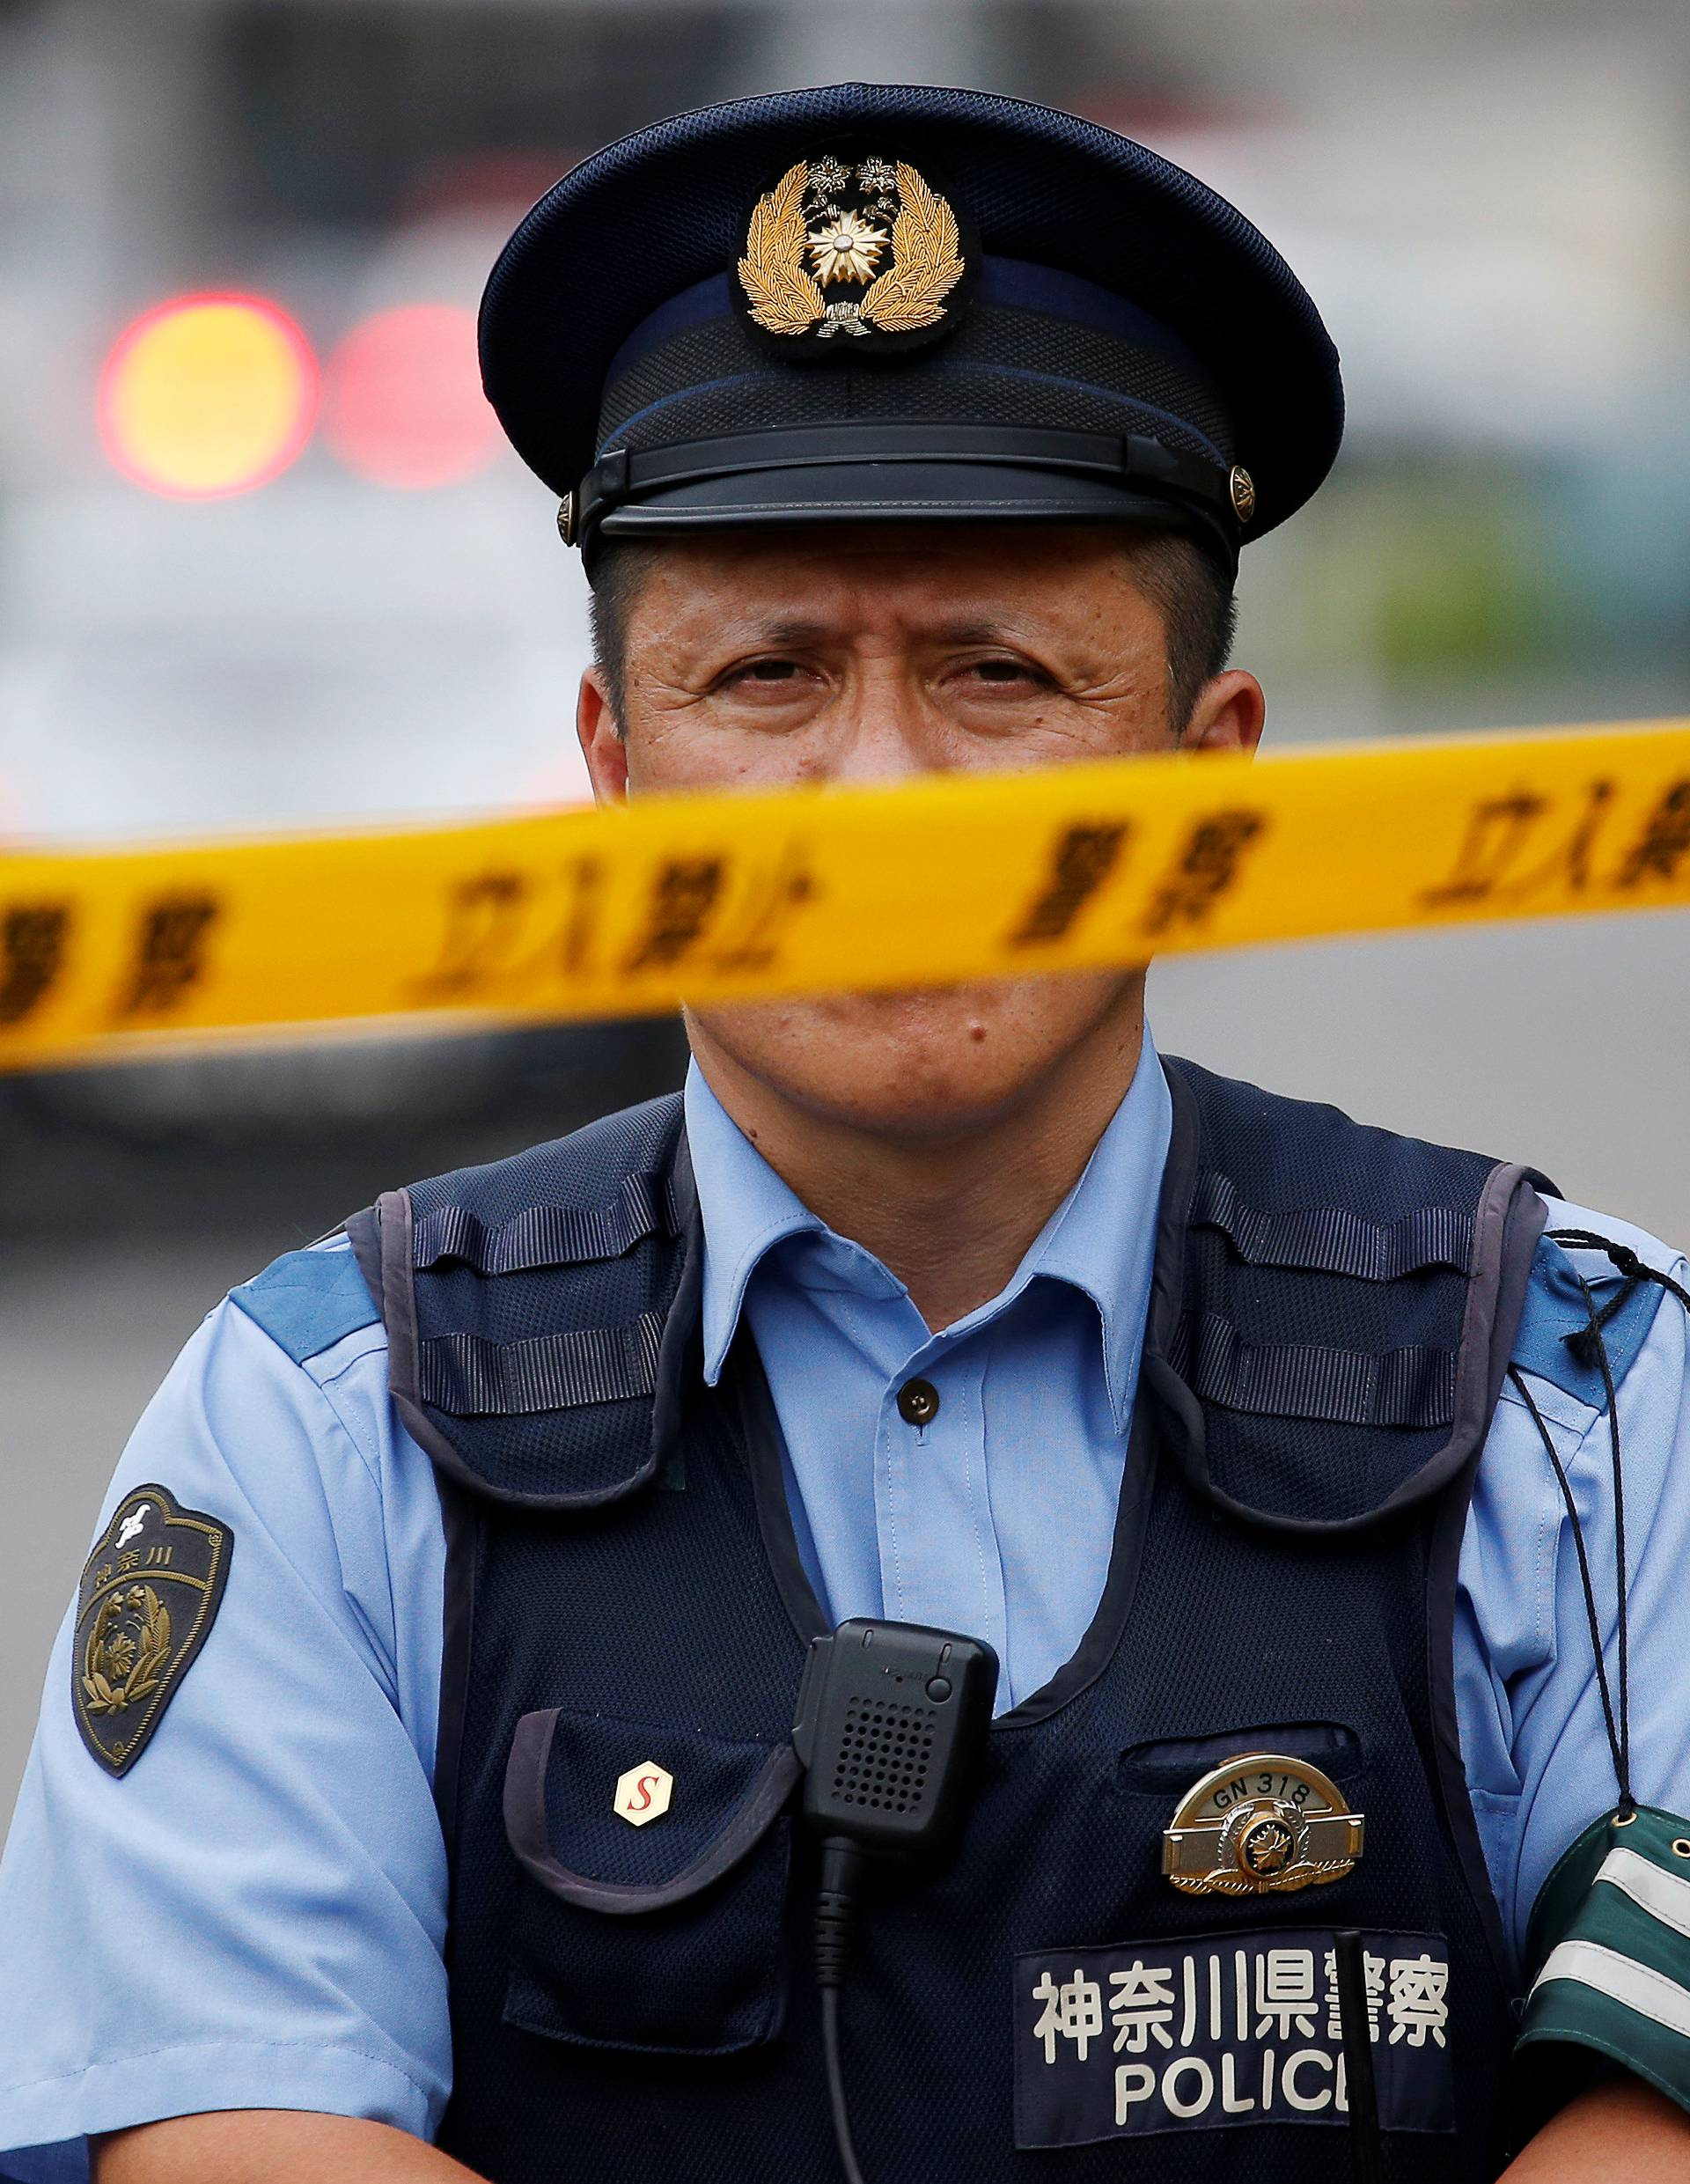 A police officer stands guard near a facility for the disabled, where a deadly attack by a knife-wielding man took place, in Sagamihara, Kanagawa prefecture, Japan